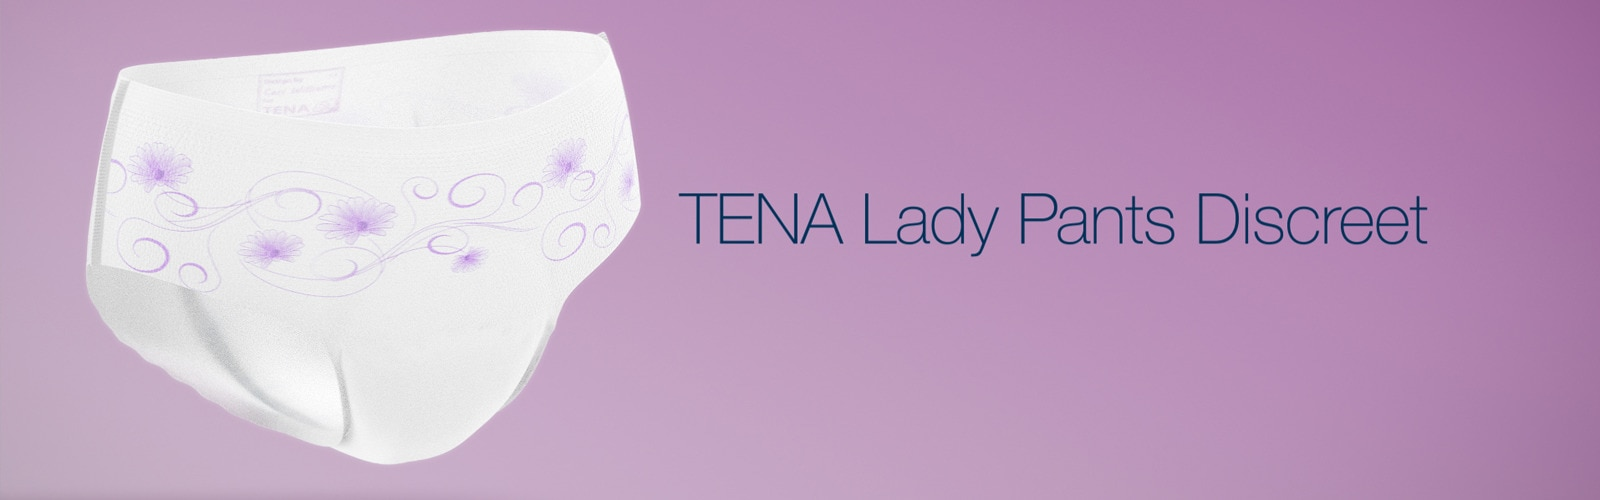 Vídeo – Novas TENA Lady Pants Discreet